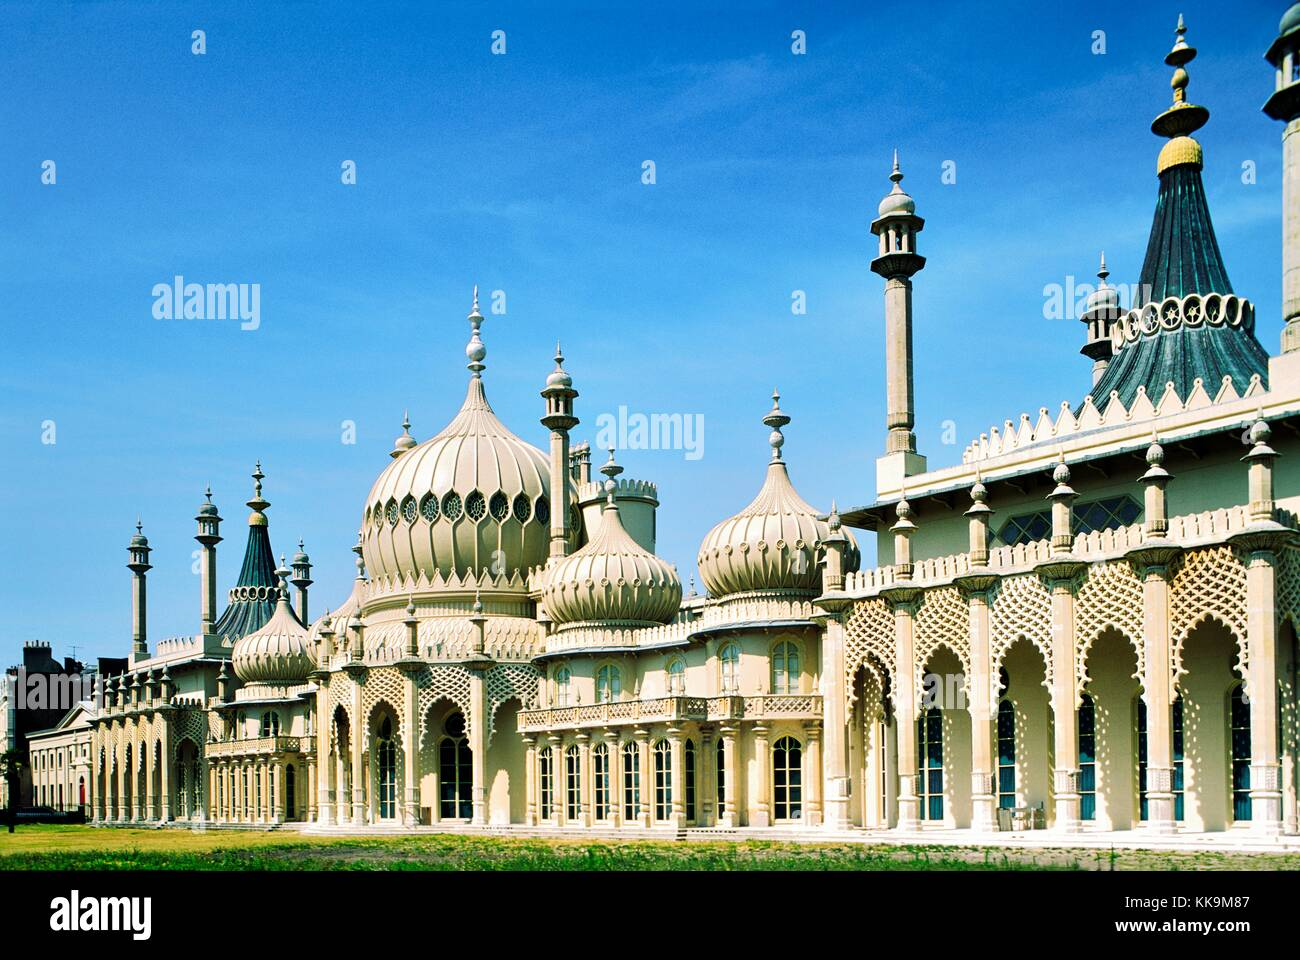 Brighton Royal Pavilion built 1822 for King George IV. Designed by John Nash. East Sussex, England. - Stock Image